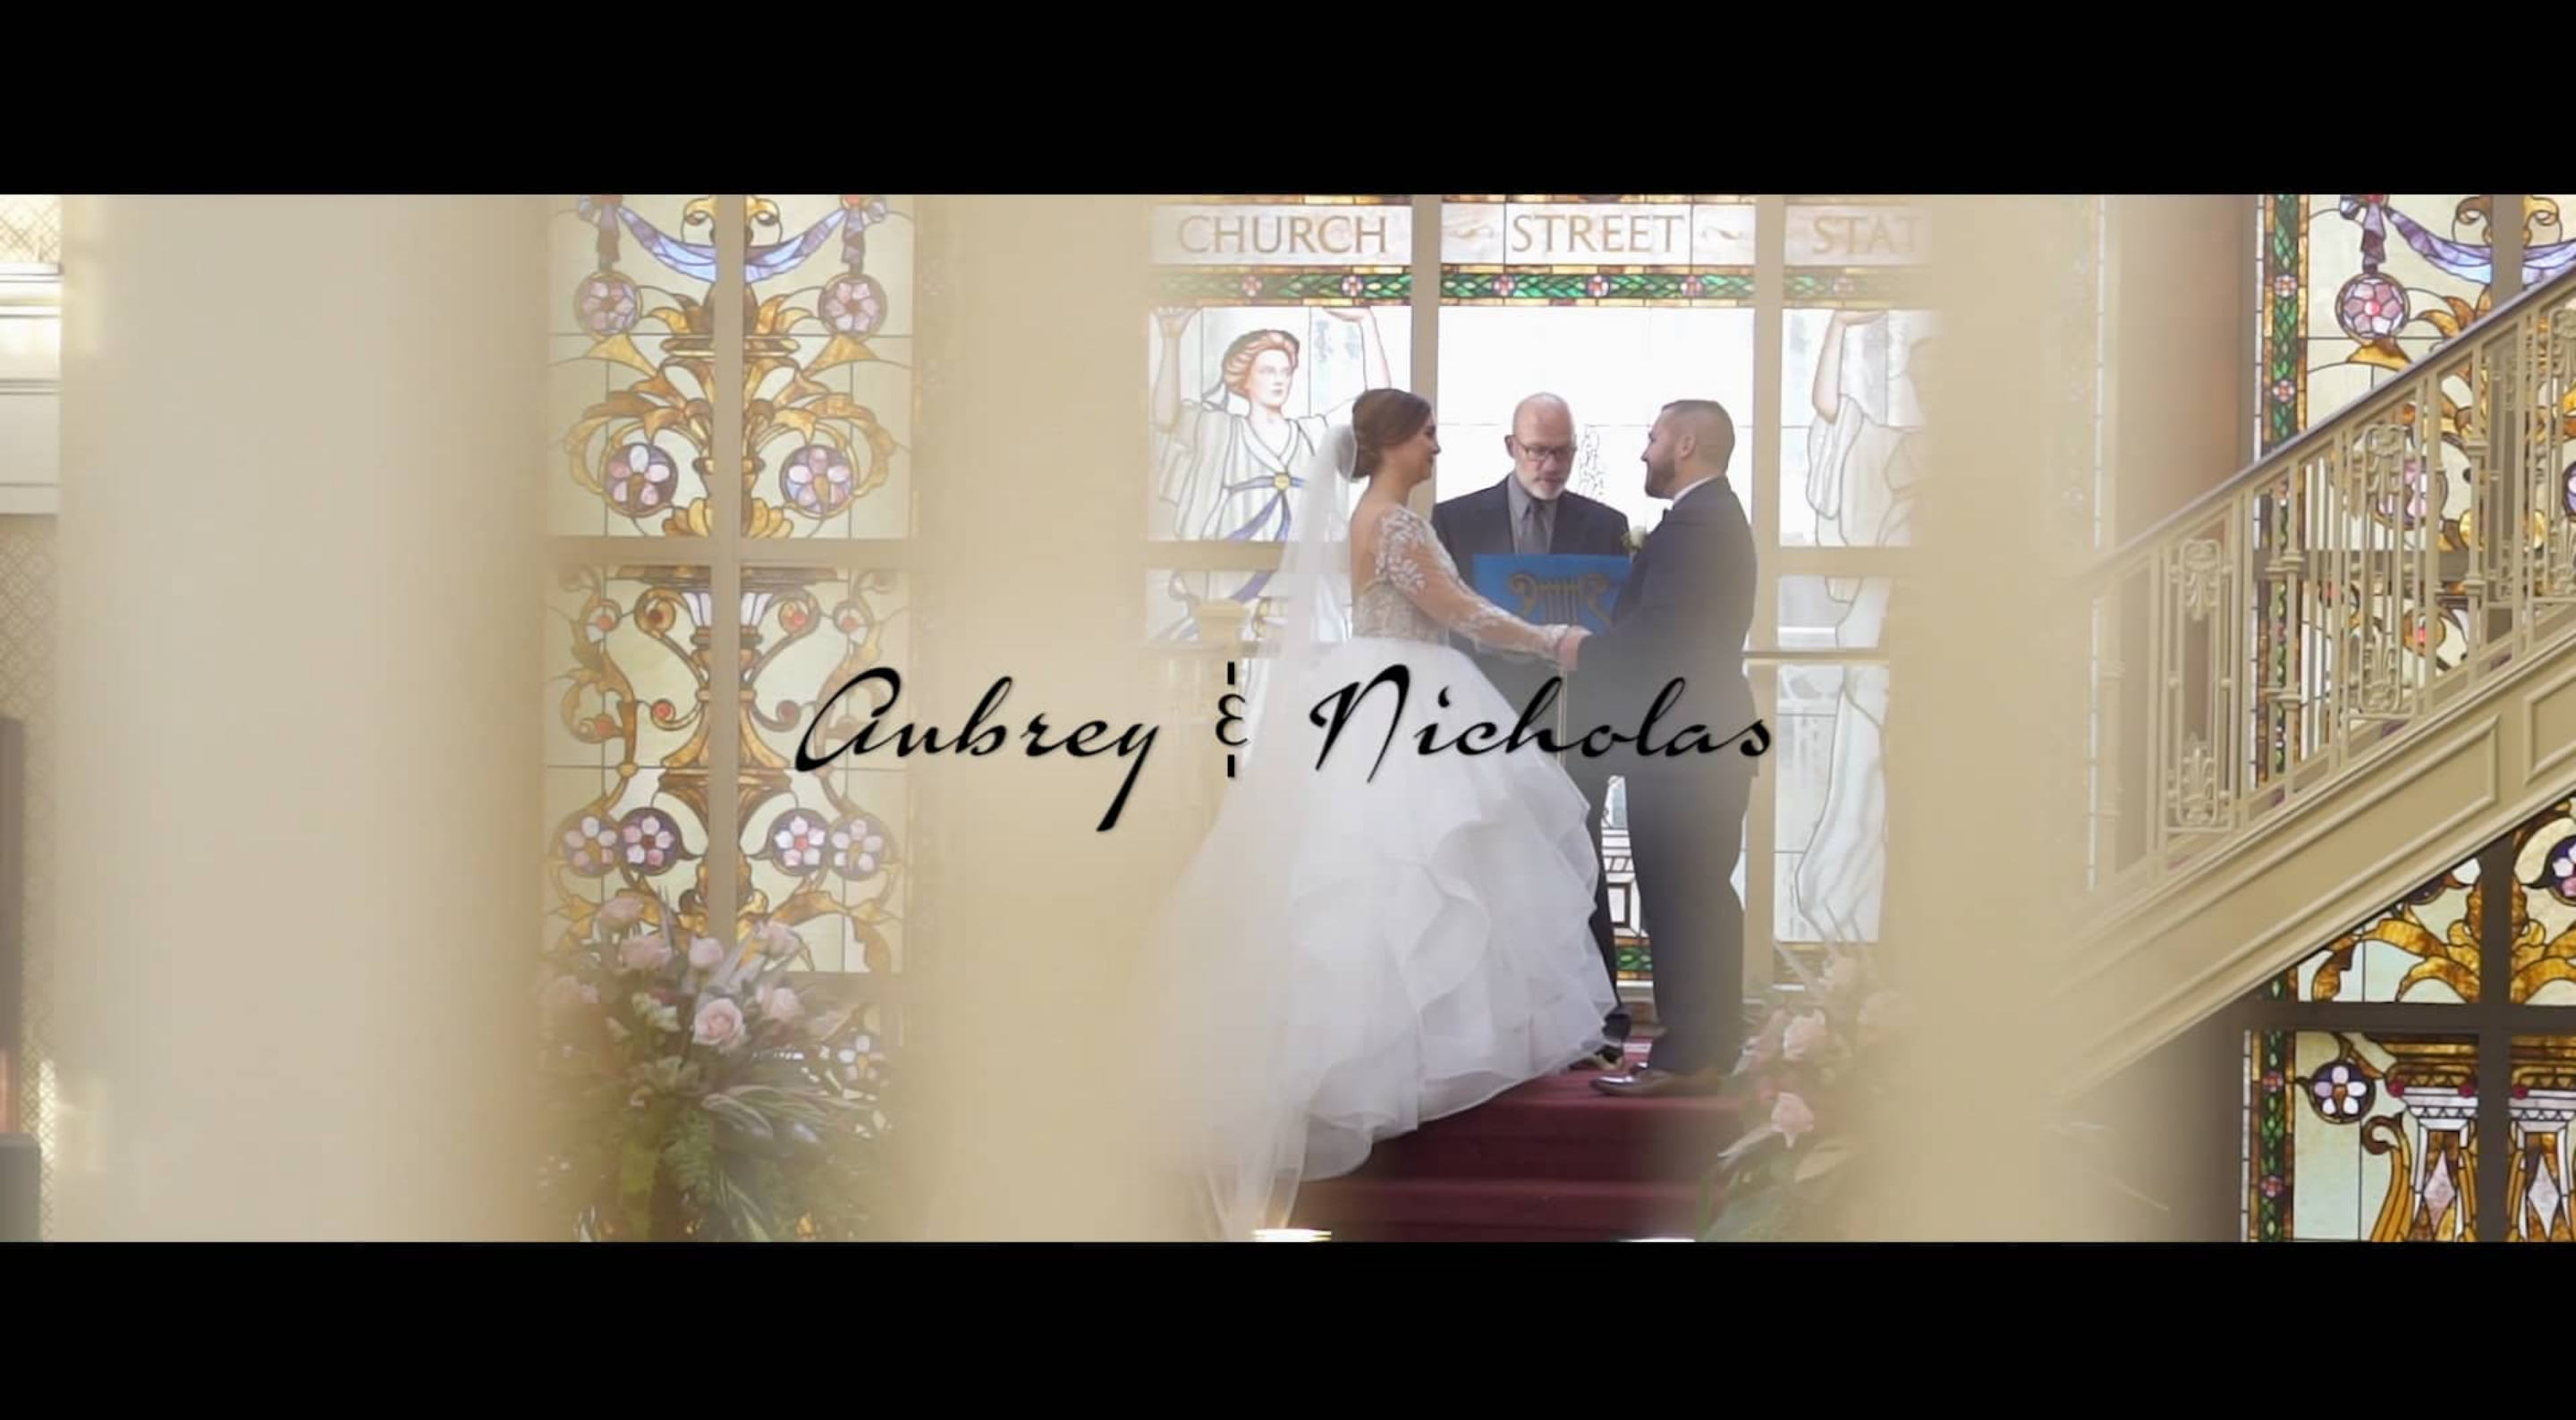 Nicholas + Aubrey | Orlando, Florida | The Ballroom at Church Street